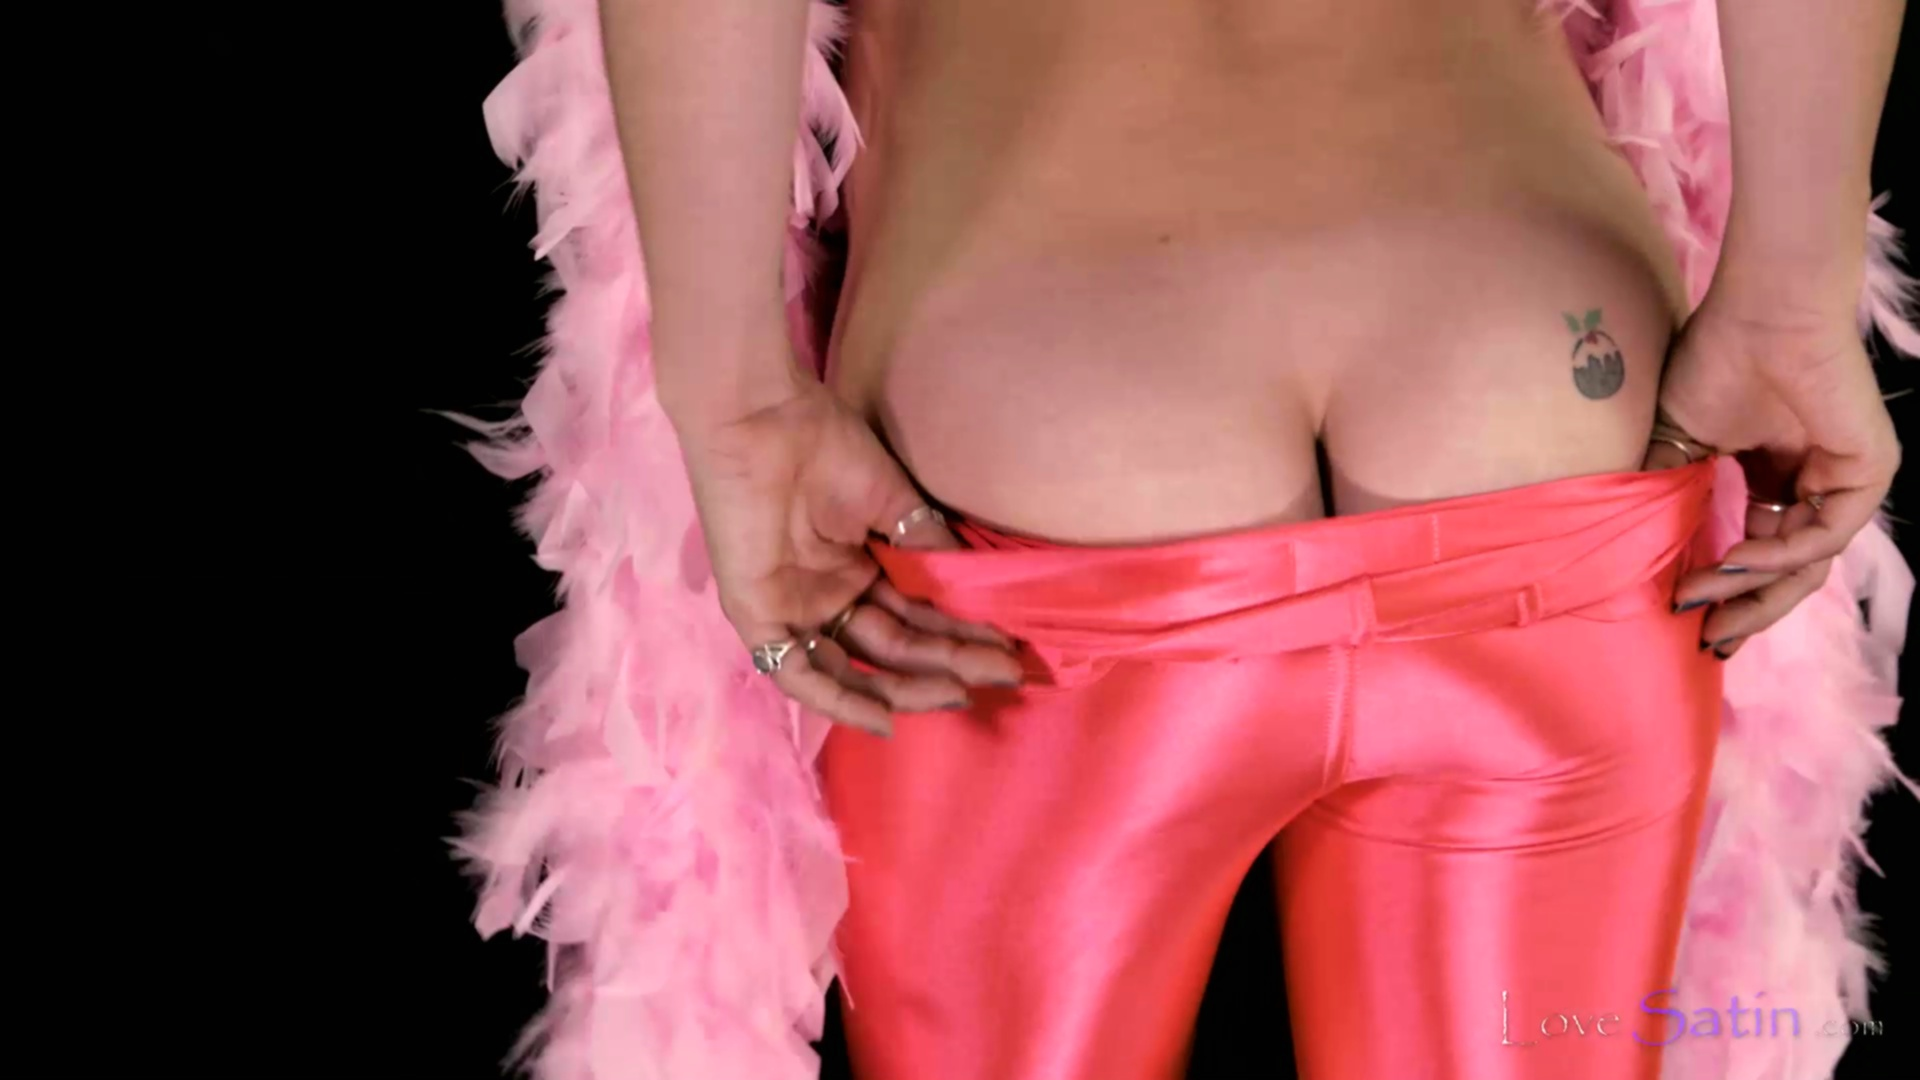 content/Kayah/Kayah-Pink-Satin-Video/1.jpg